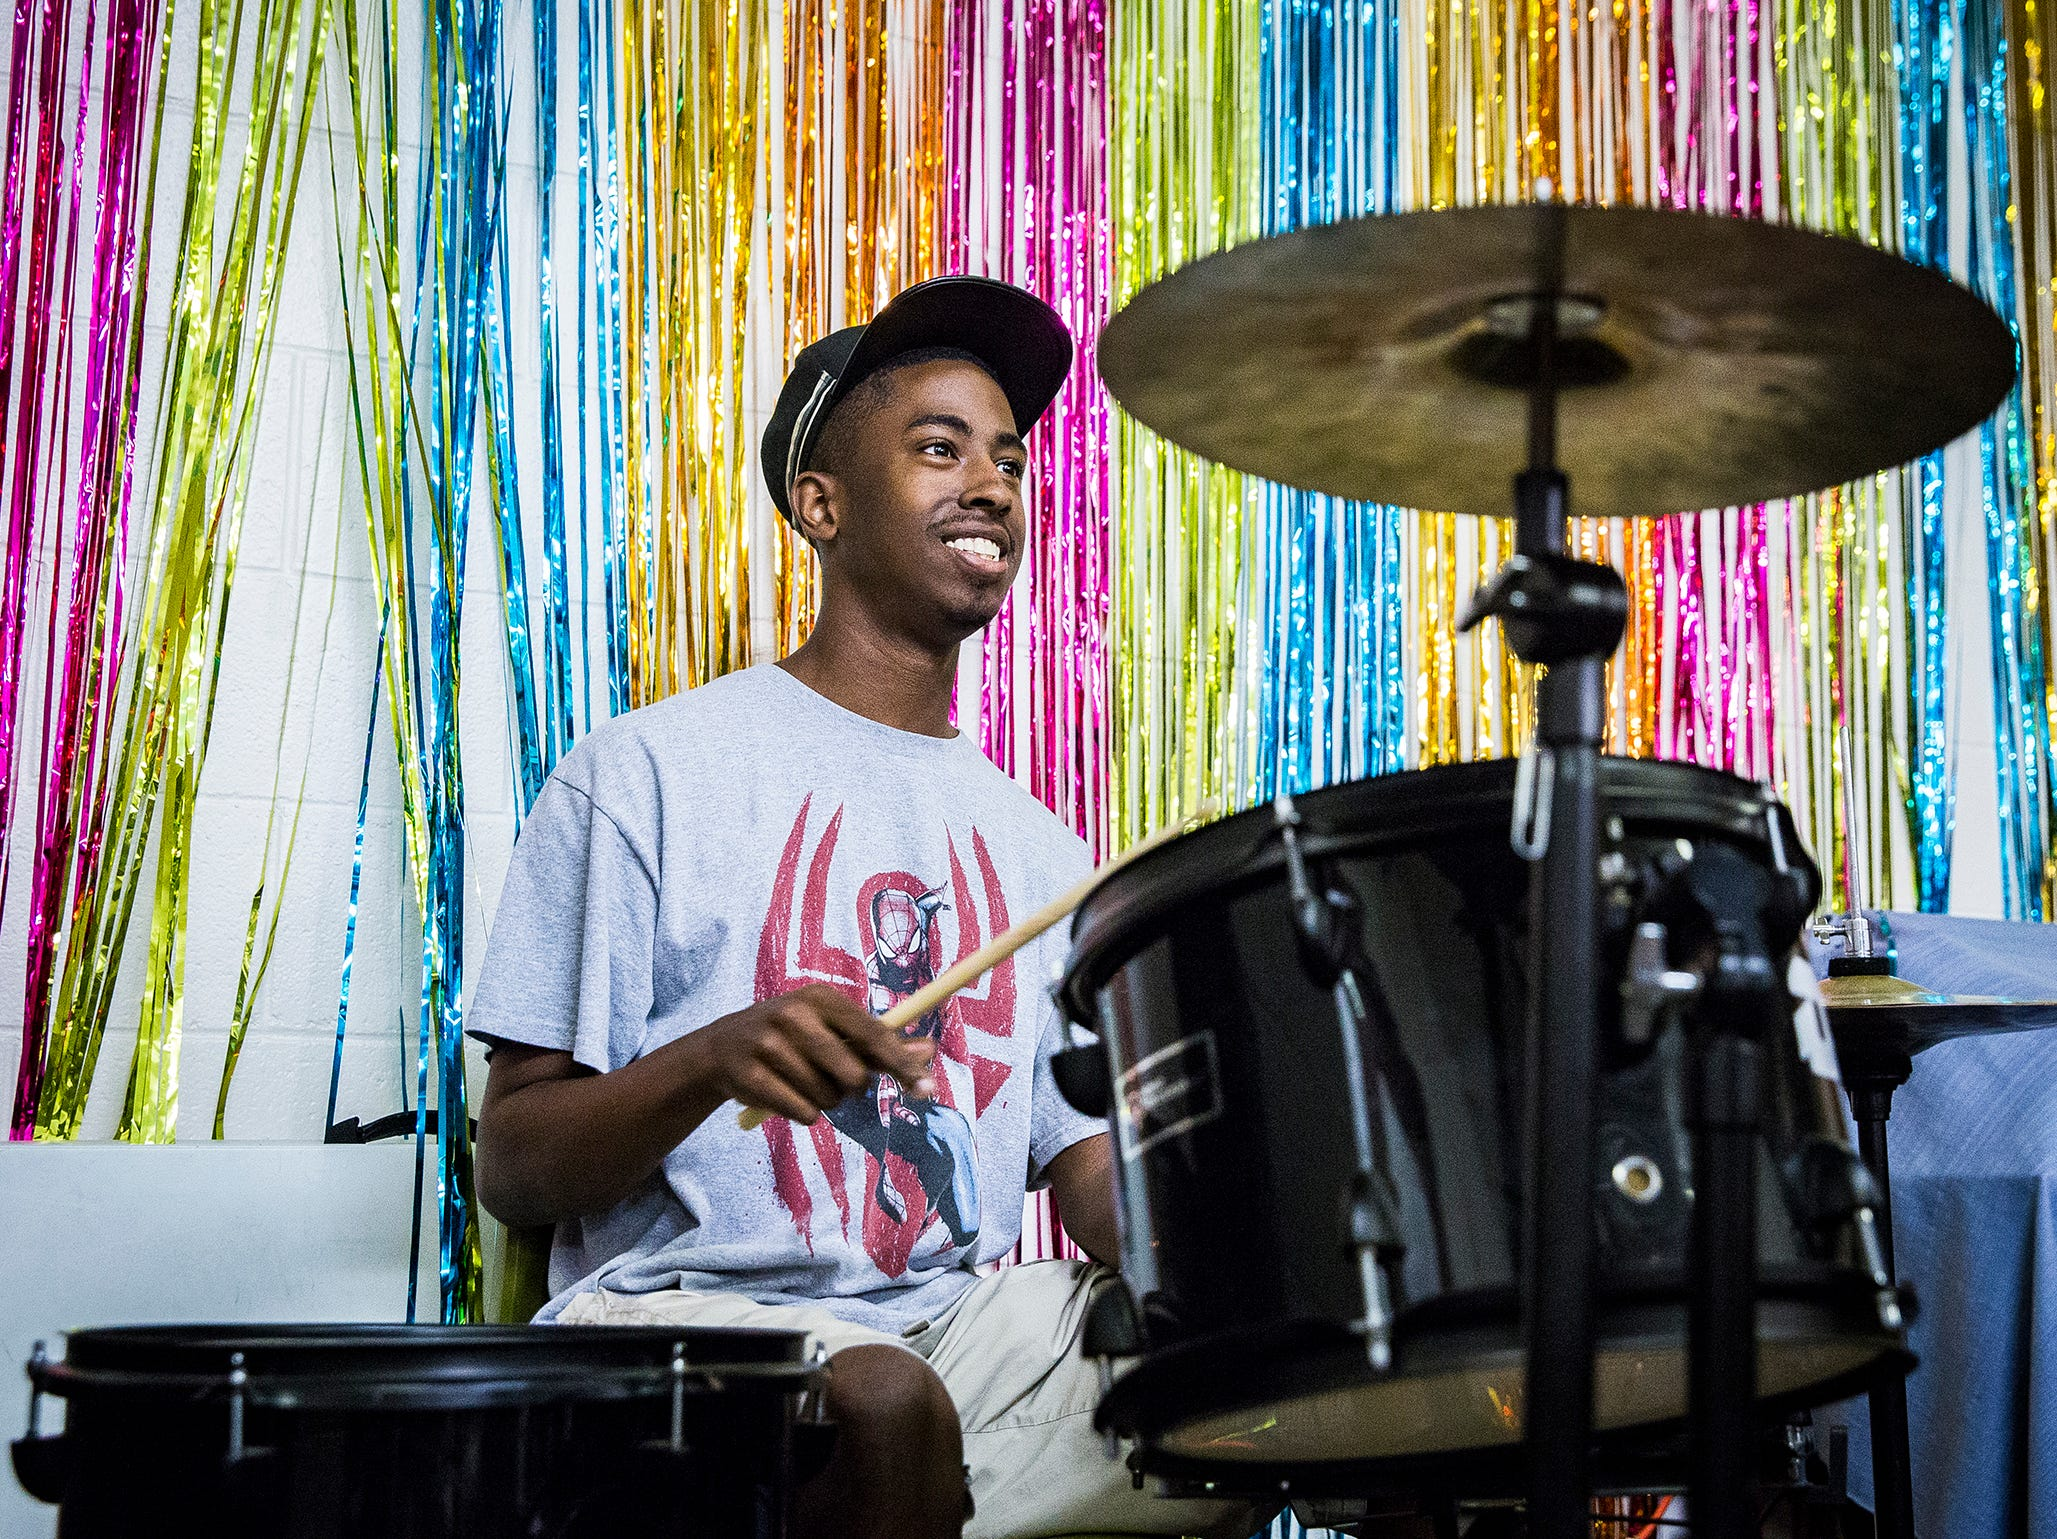 Kory Jones practices drumming at Hillcroft Services in Muncie. Jones settled on drums after experimenting with several different instruments.